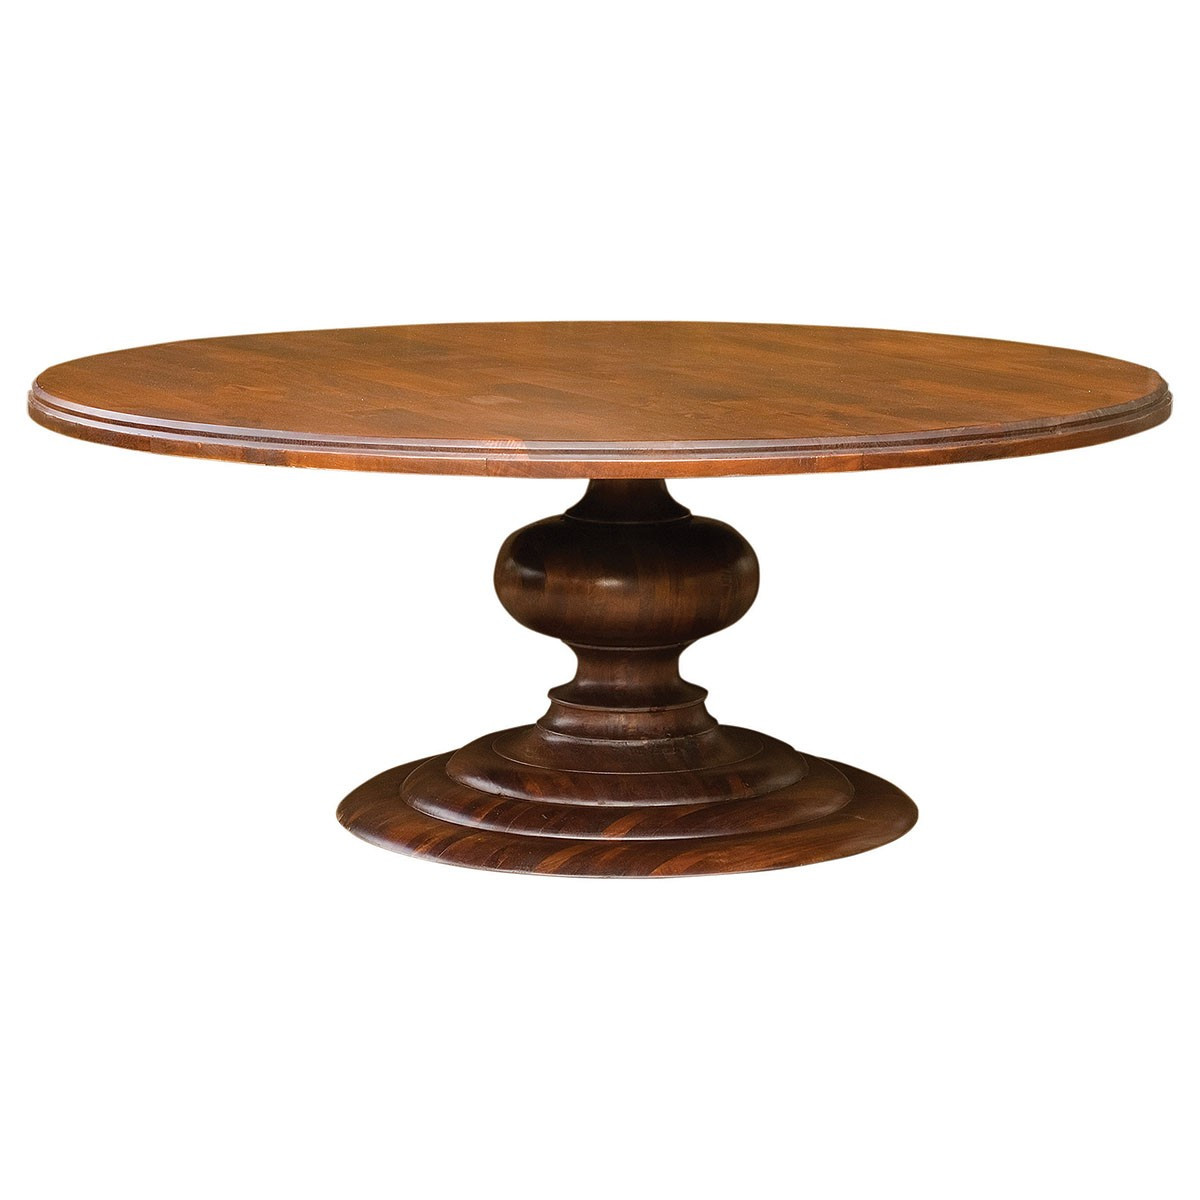 Dining table round pedestal dining table 72 inch for Large round dining table